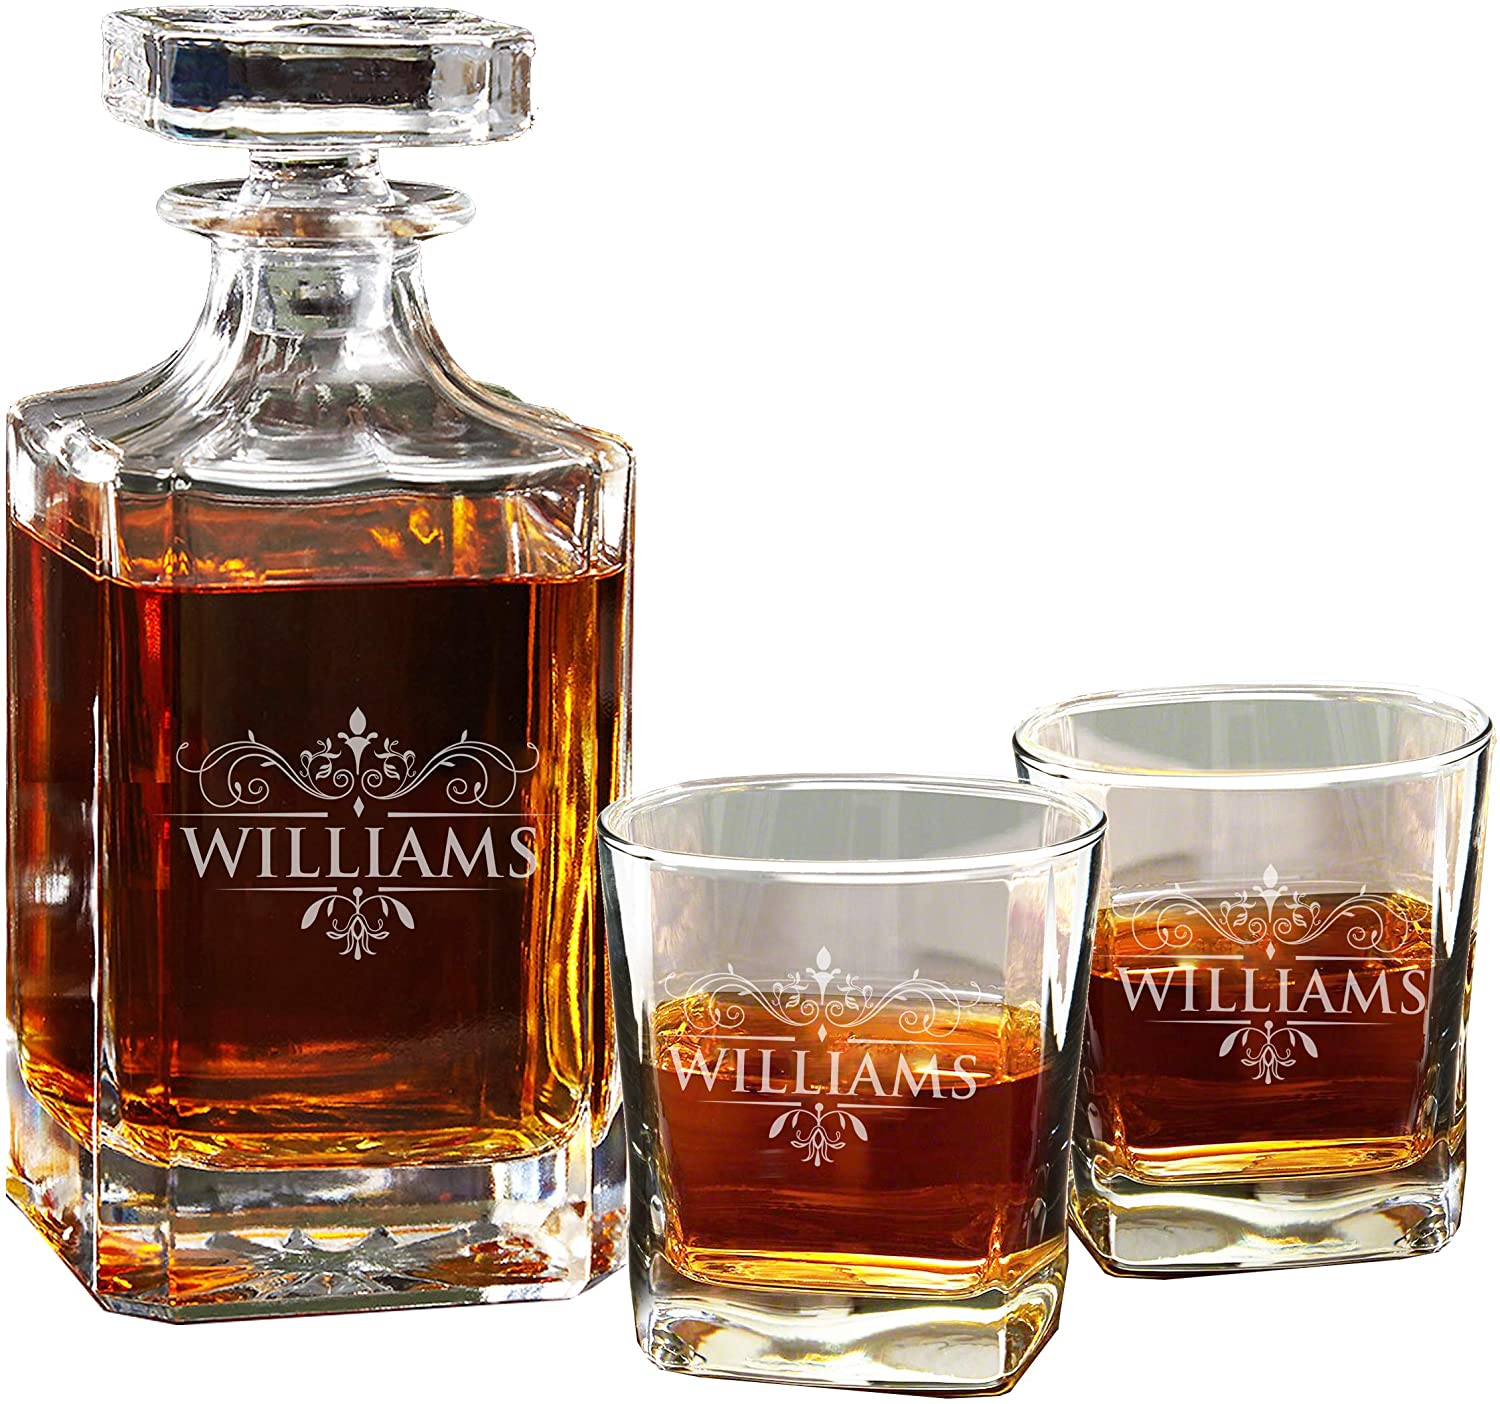 Personalized Whiskey Decanter and 2 Rocks Glasses Set - Custom Engraved with Antique Design